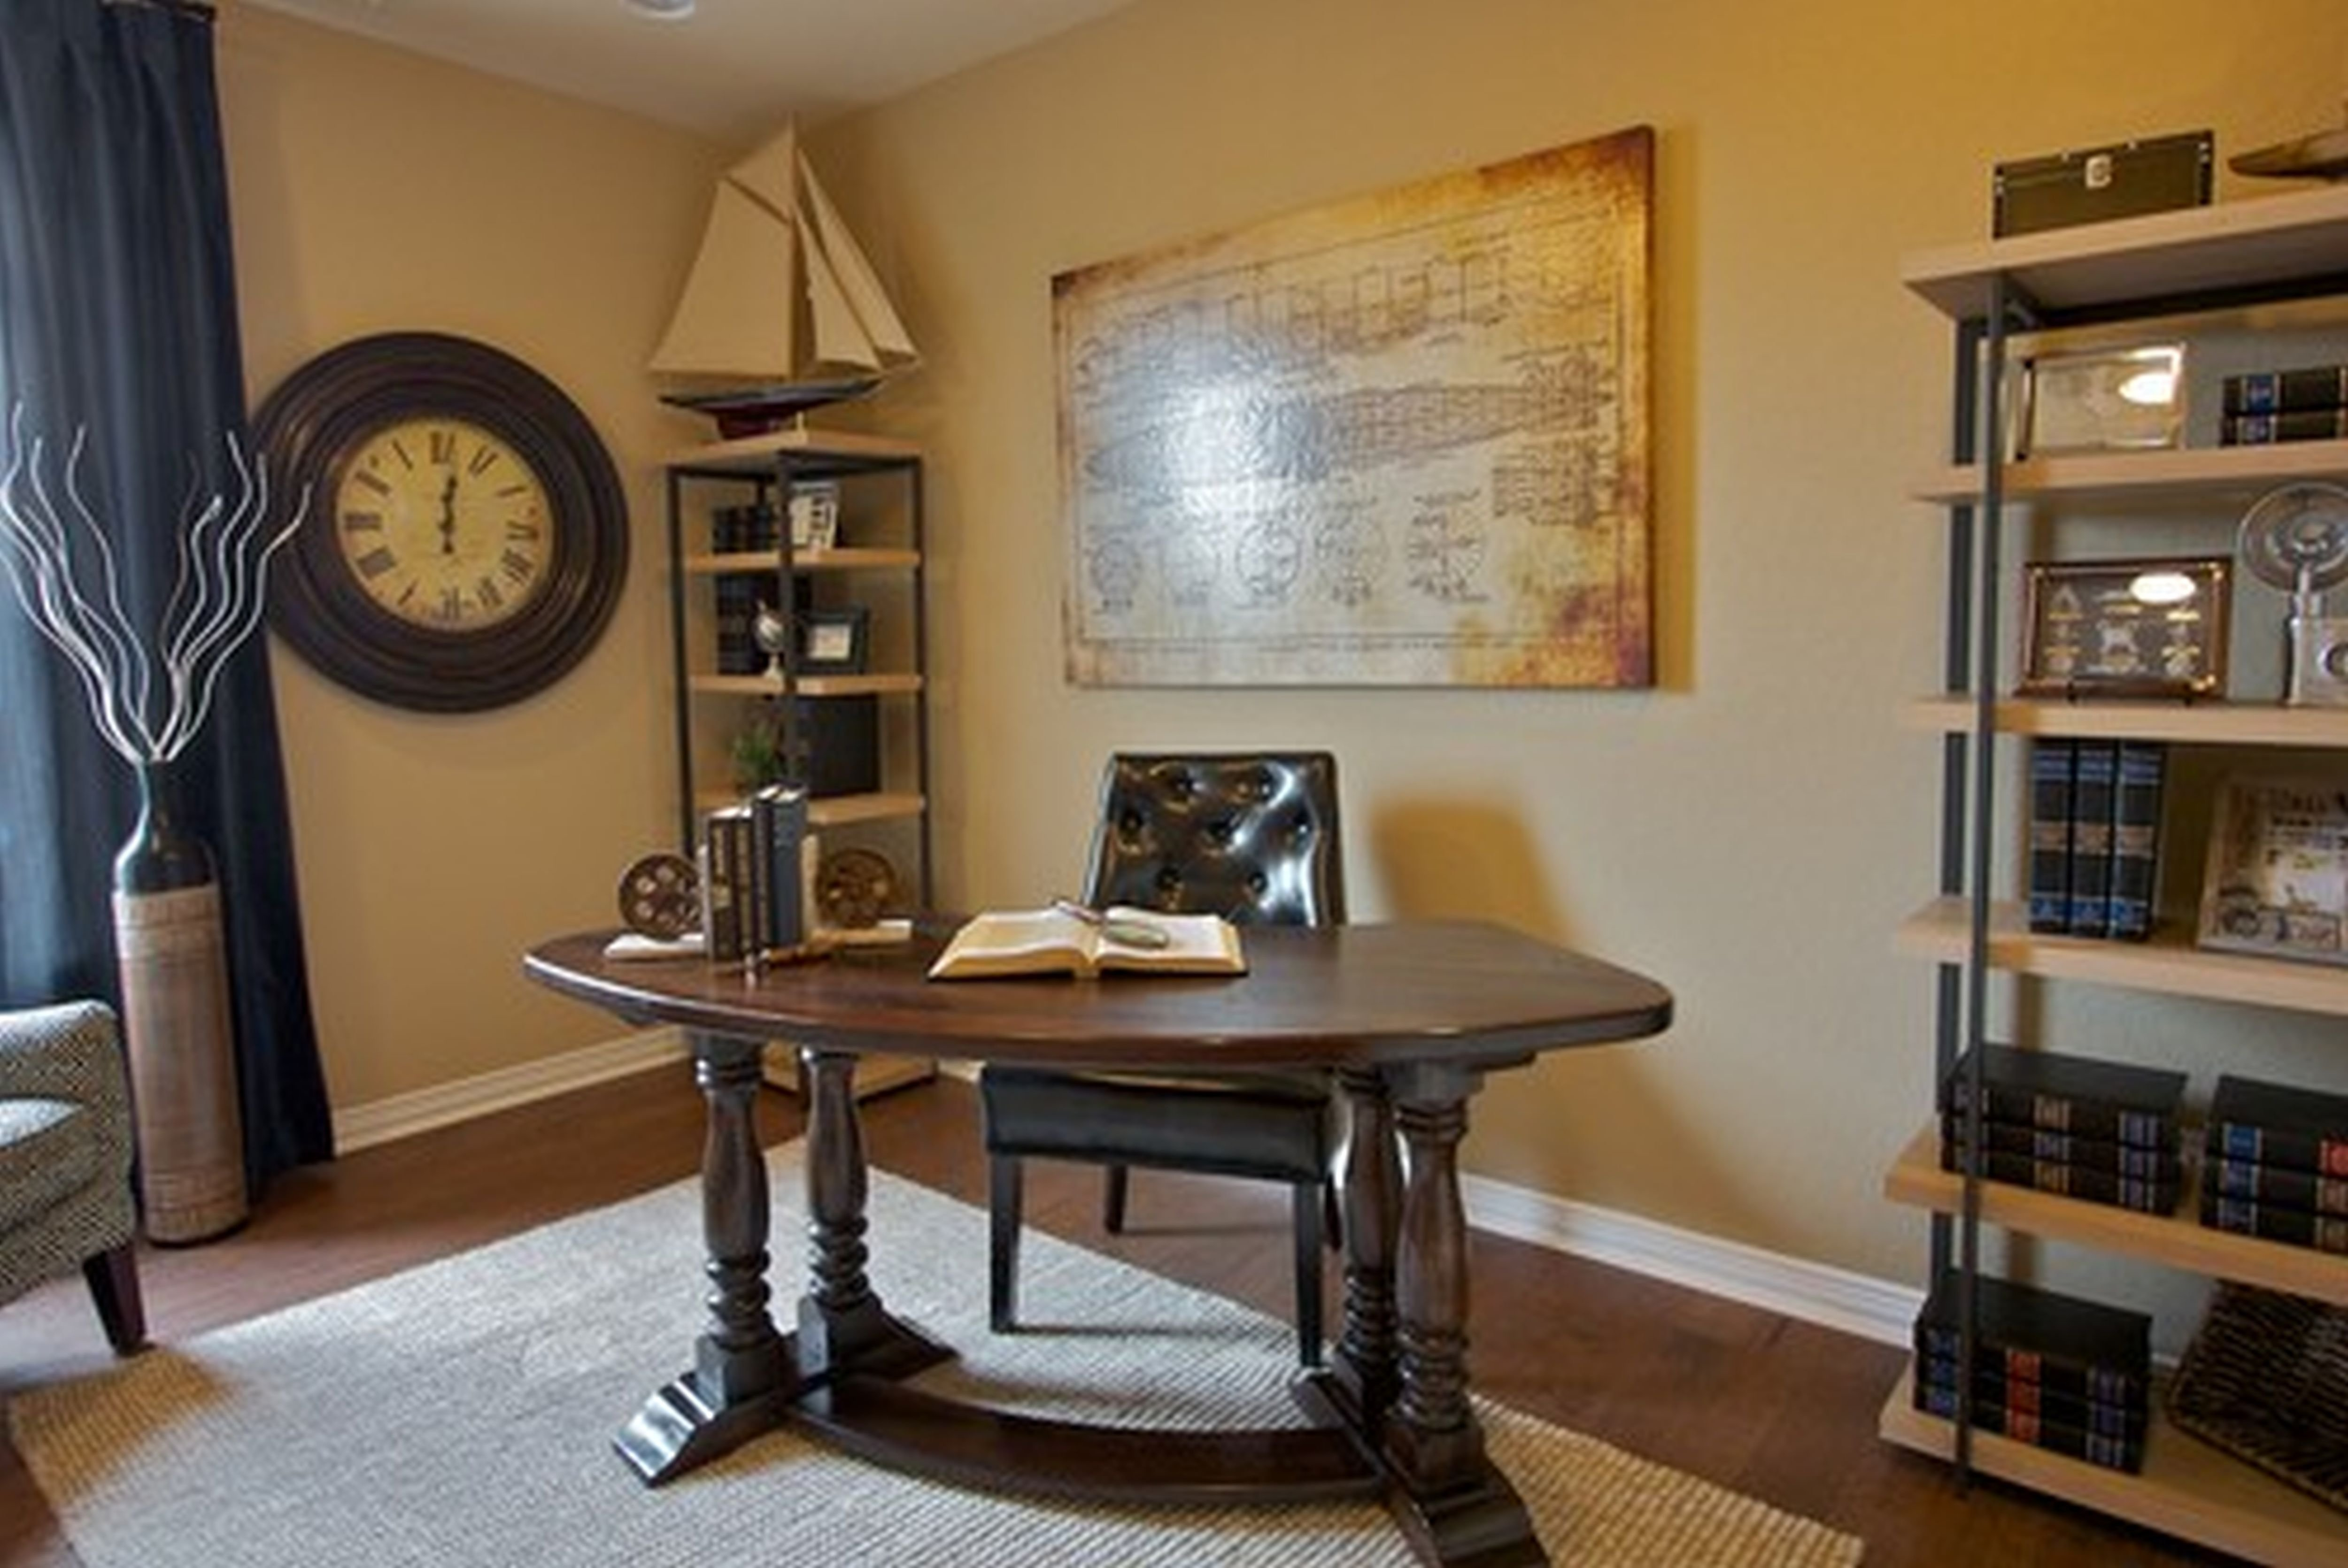 10 Best Decorating Ideas For Home Office decorating home office ideas pictures best of exciting victorian 2020